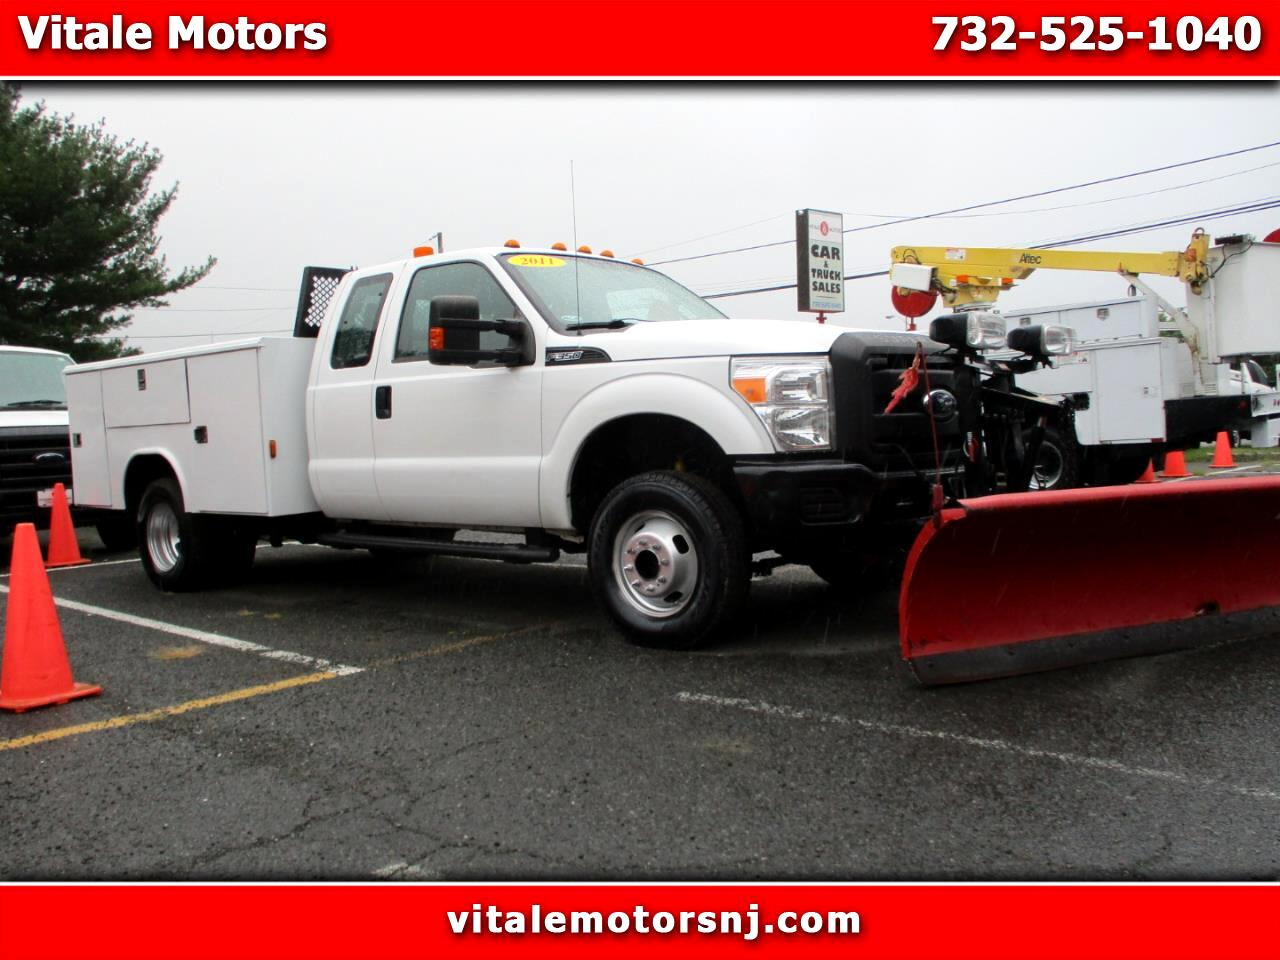 2011 Ford F-350 SD 4X4 UTILITY BODY W/ SNOW PLOW & LIFT GATE DRW